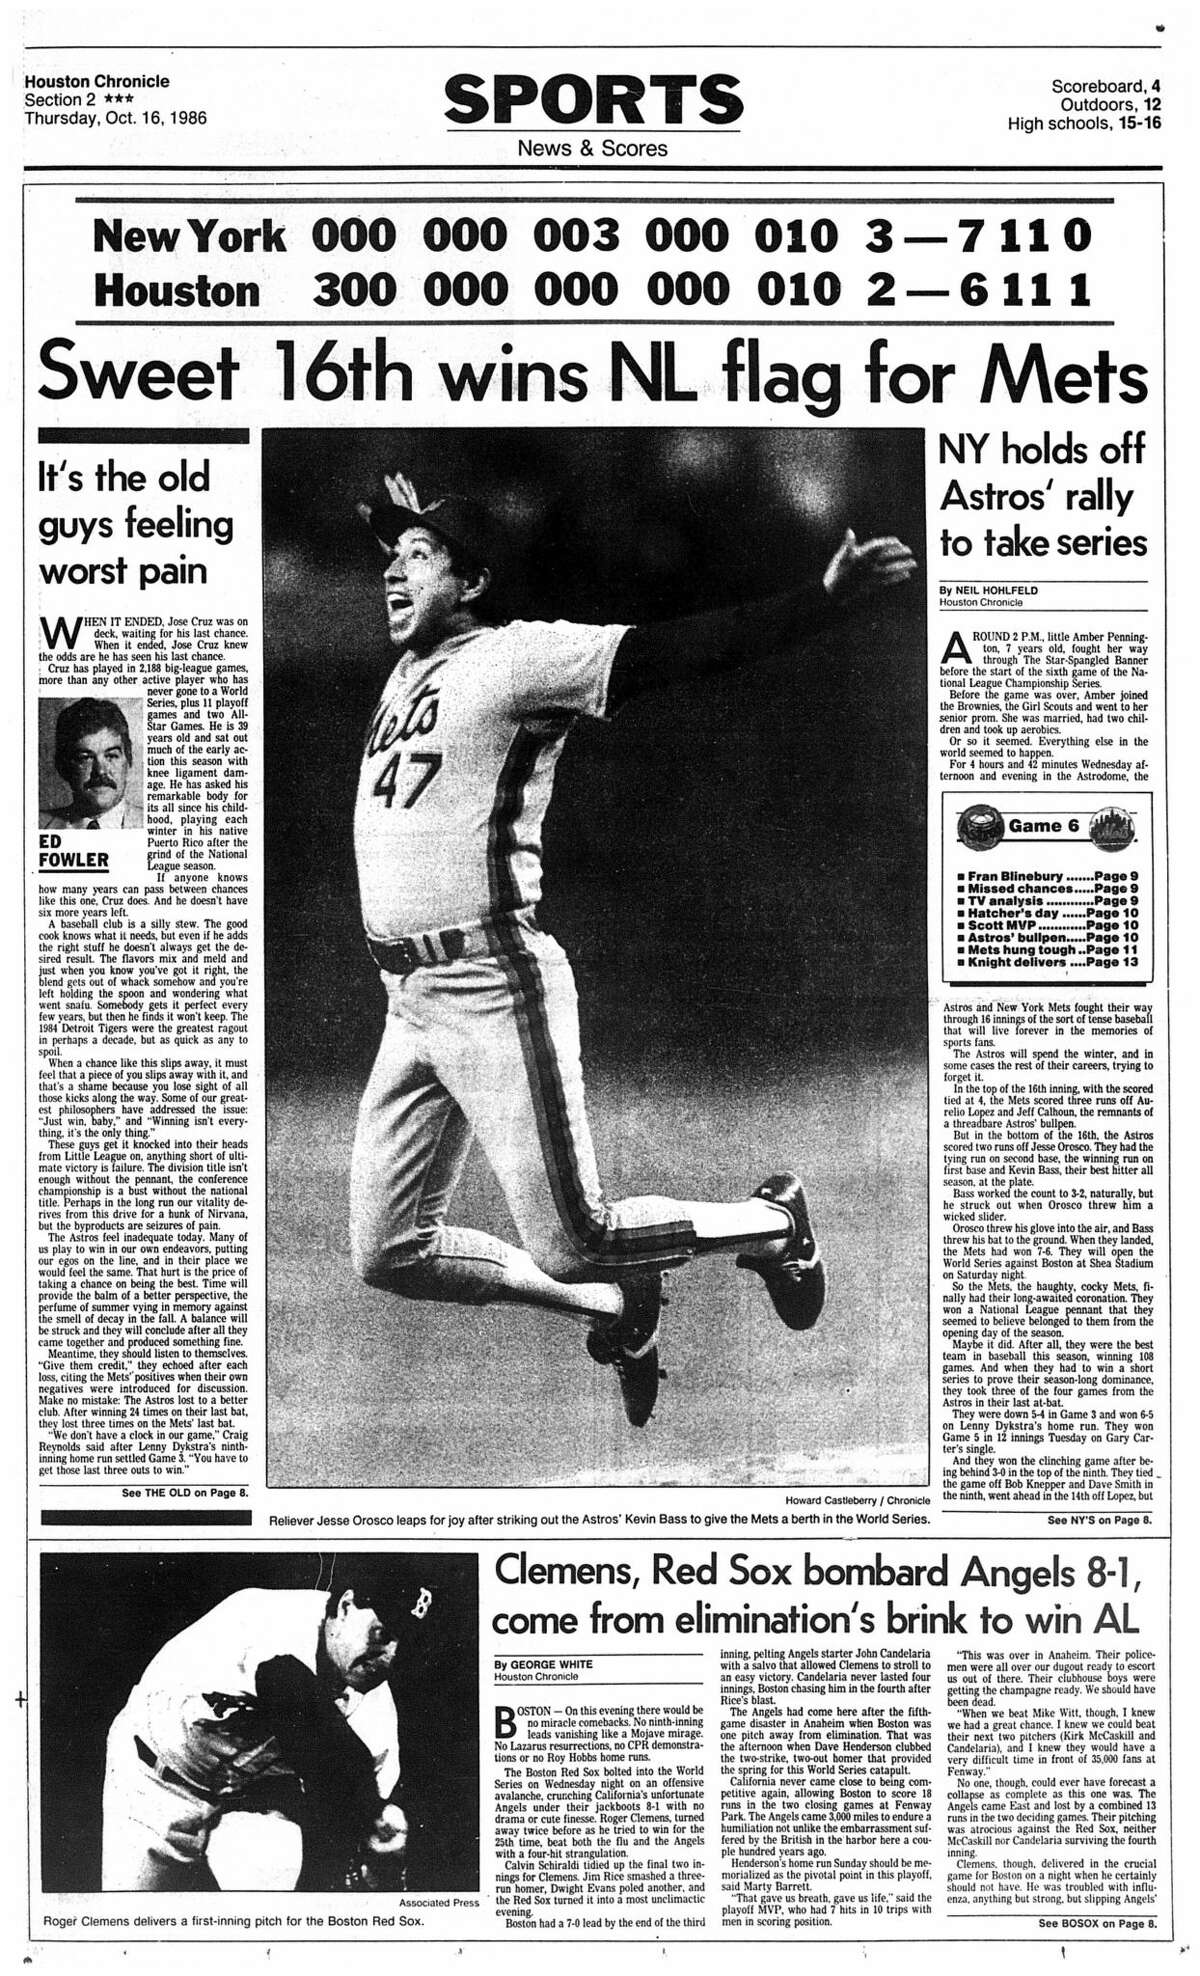 Houston Chronicle sports front page from Oct. 16, 1986, after Game 6 of the Astros/Mets National League Championship Series.